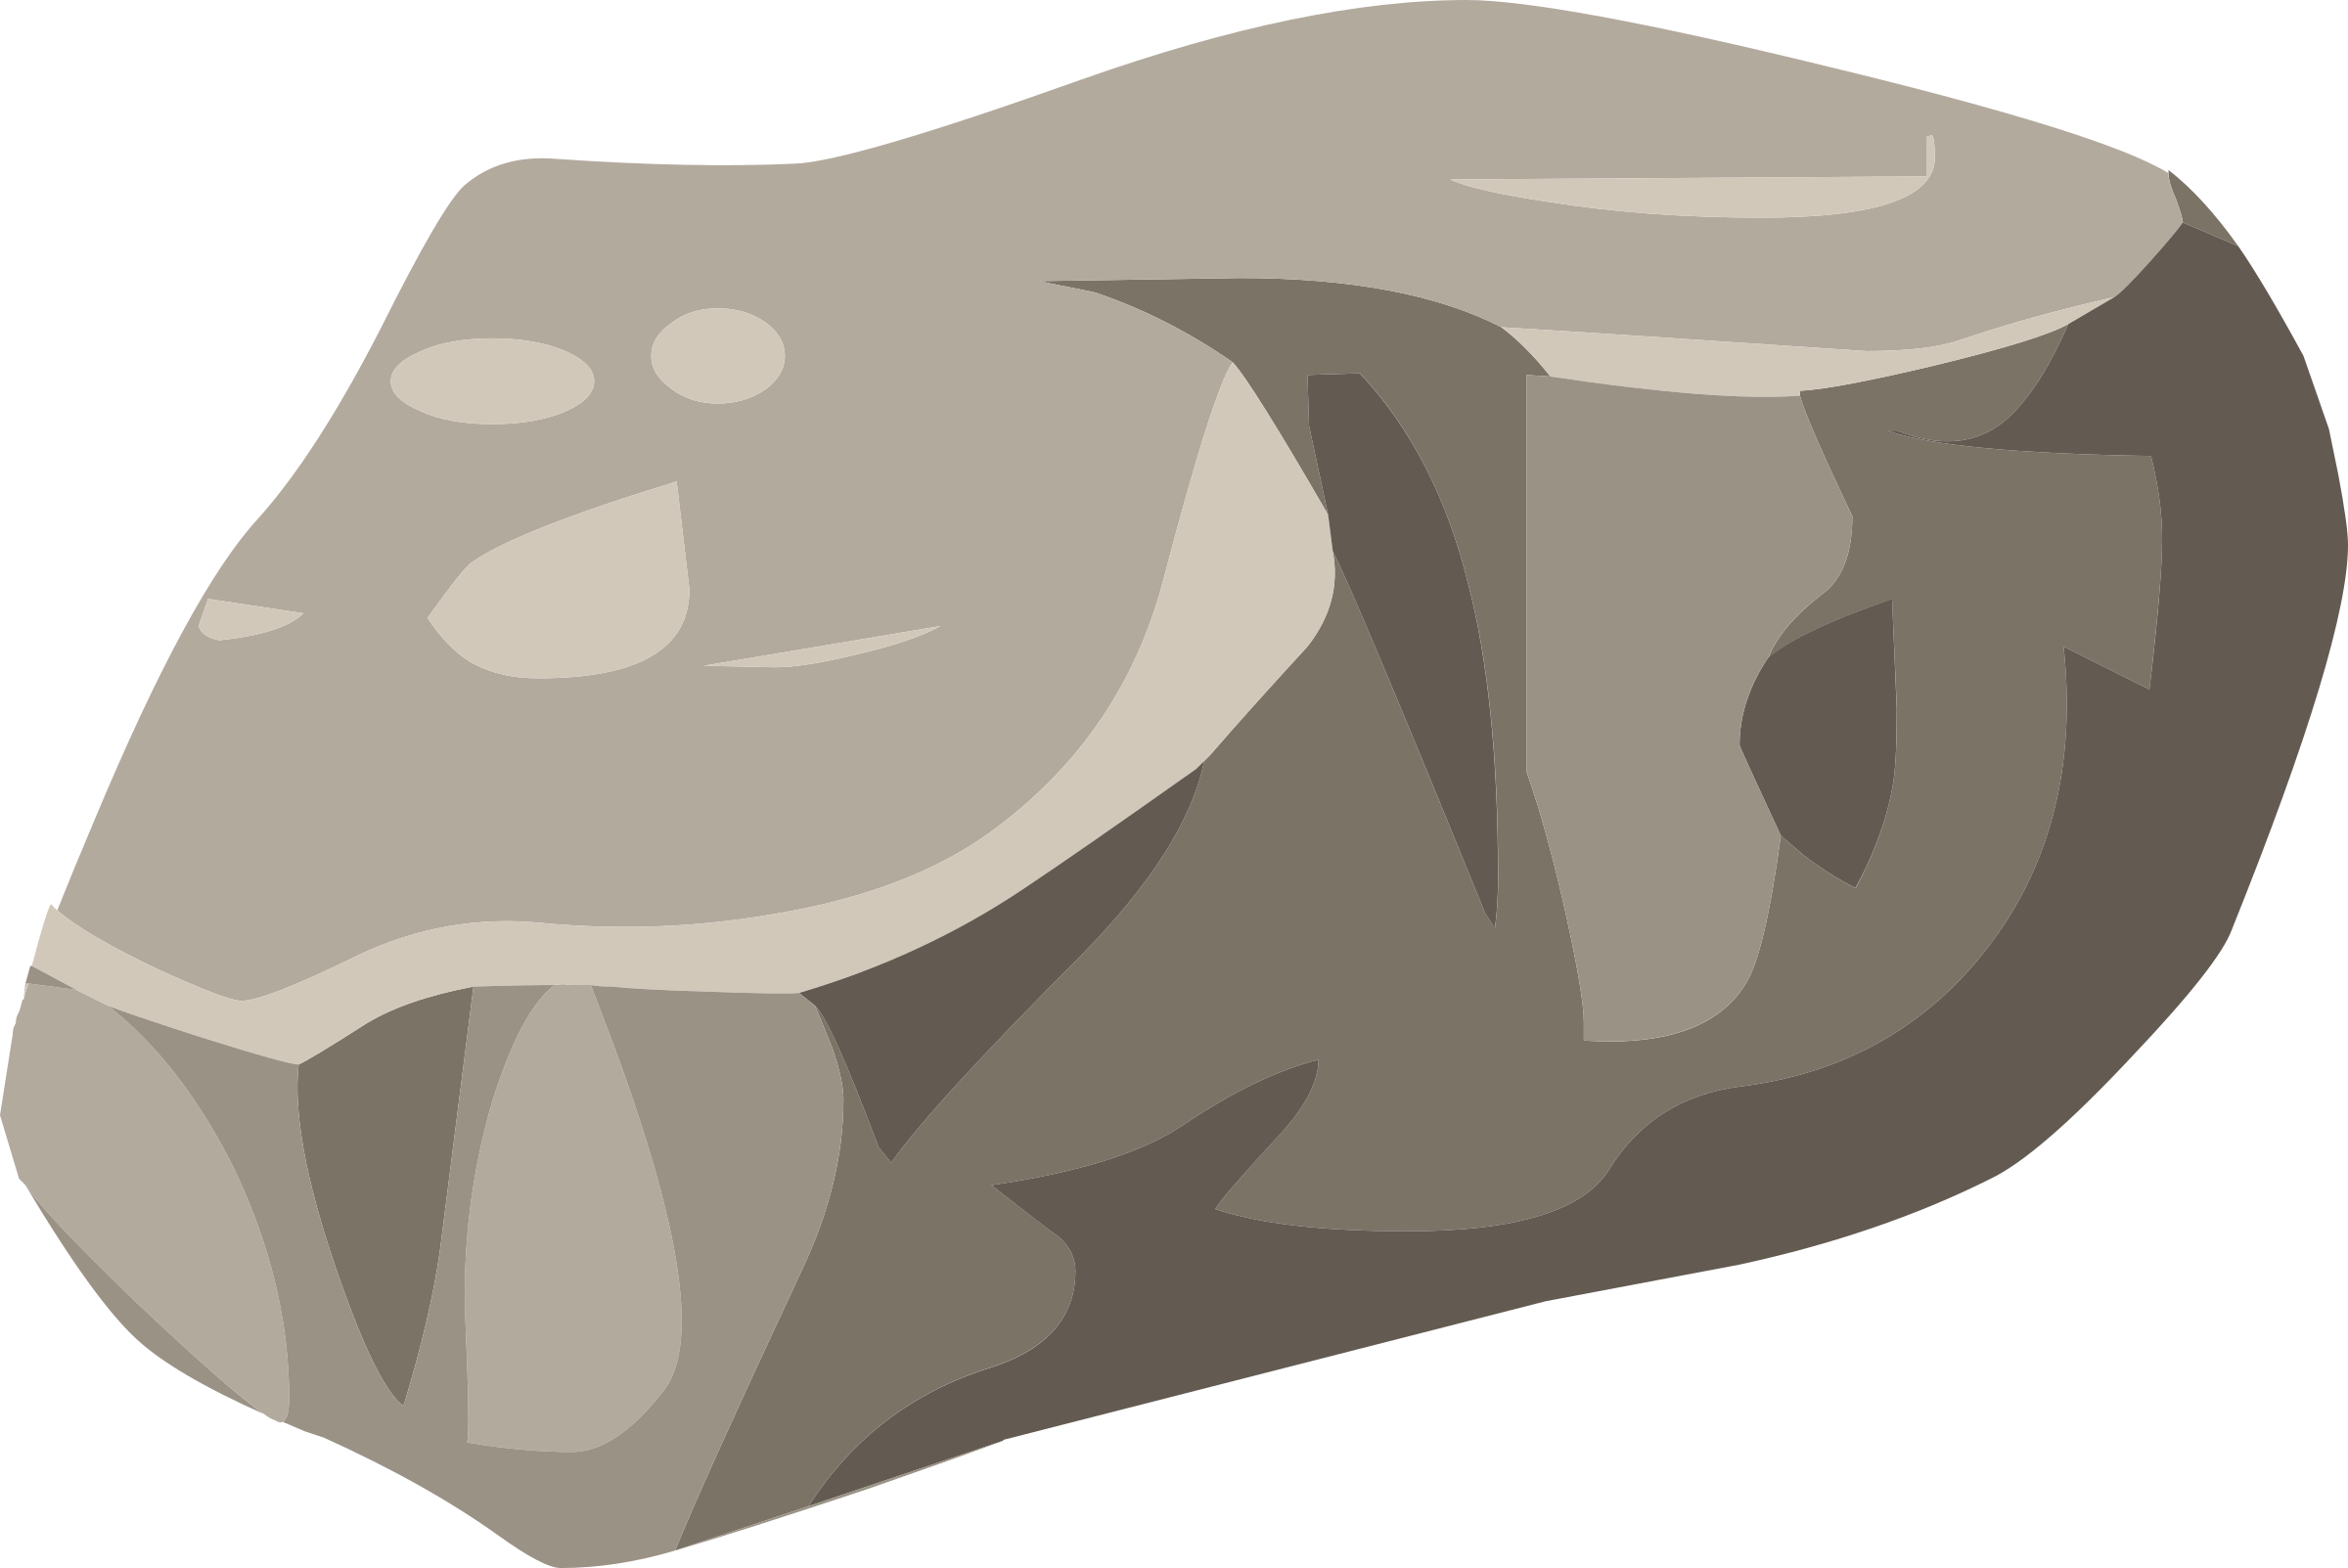 Boulder clipart animated. Rock pencil and in